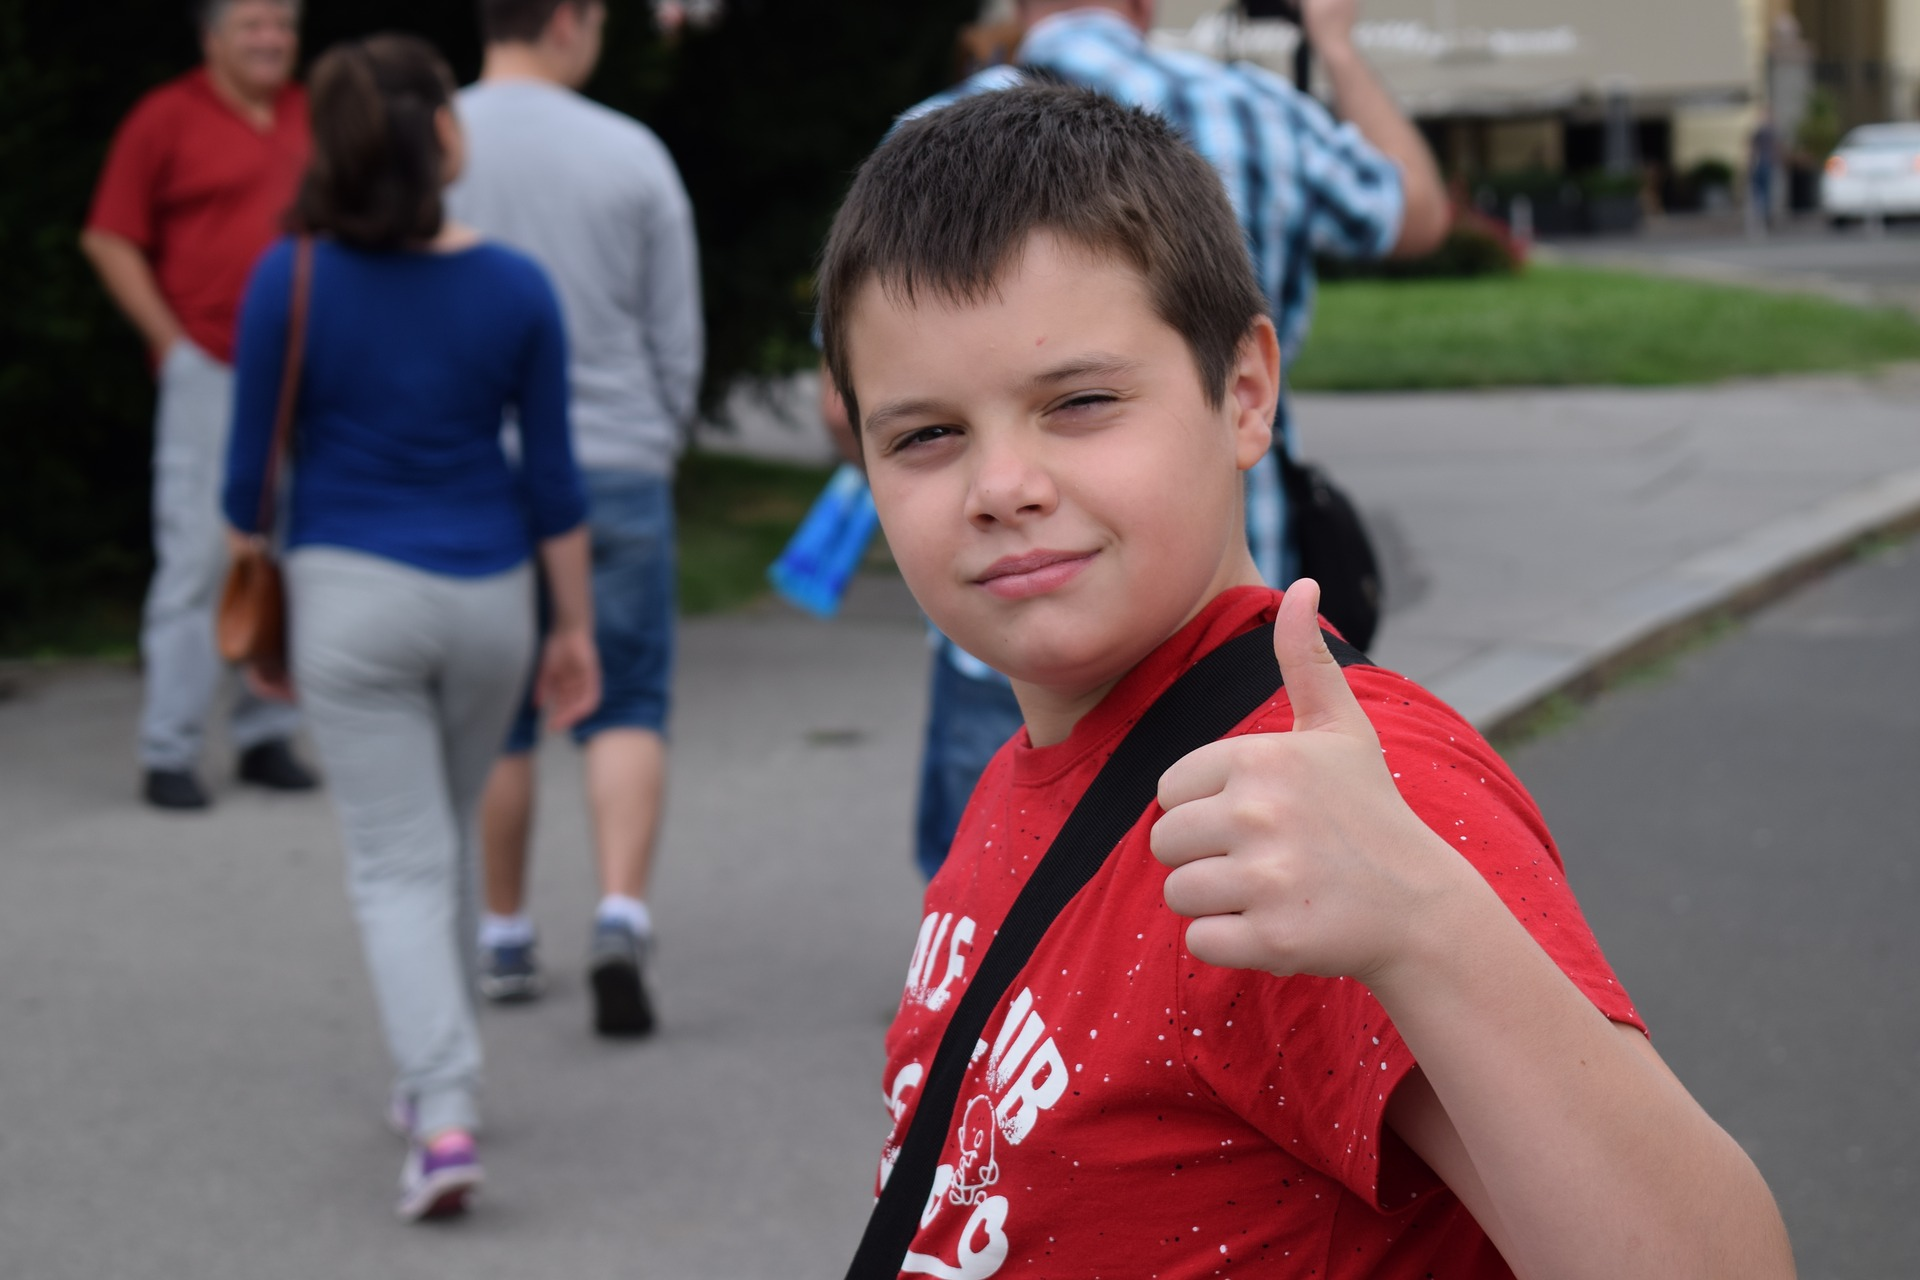 Boy with thumbs up